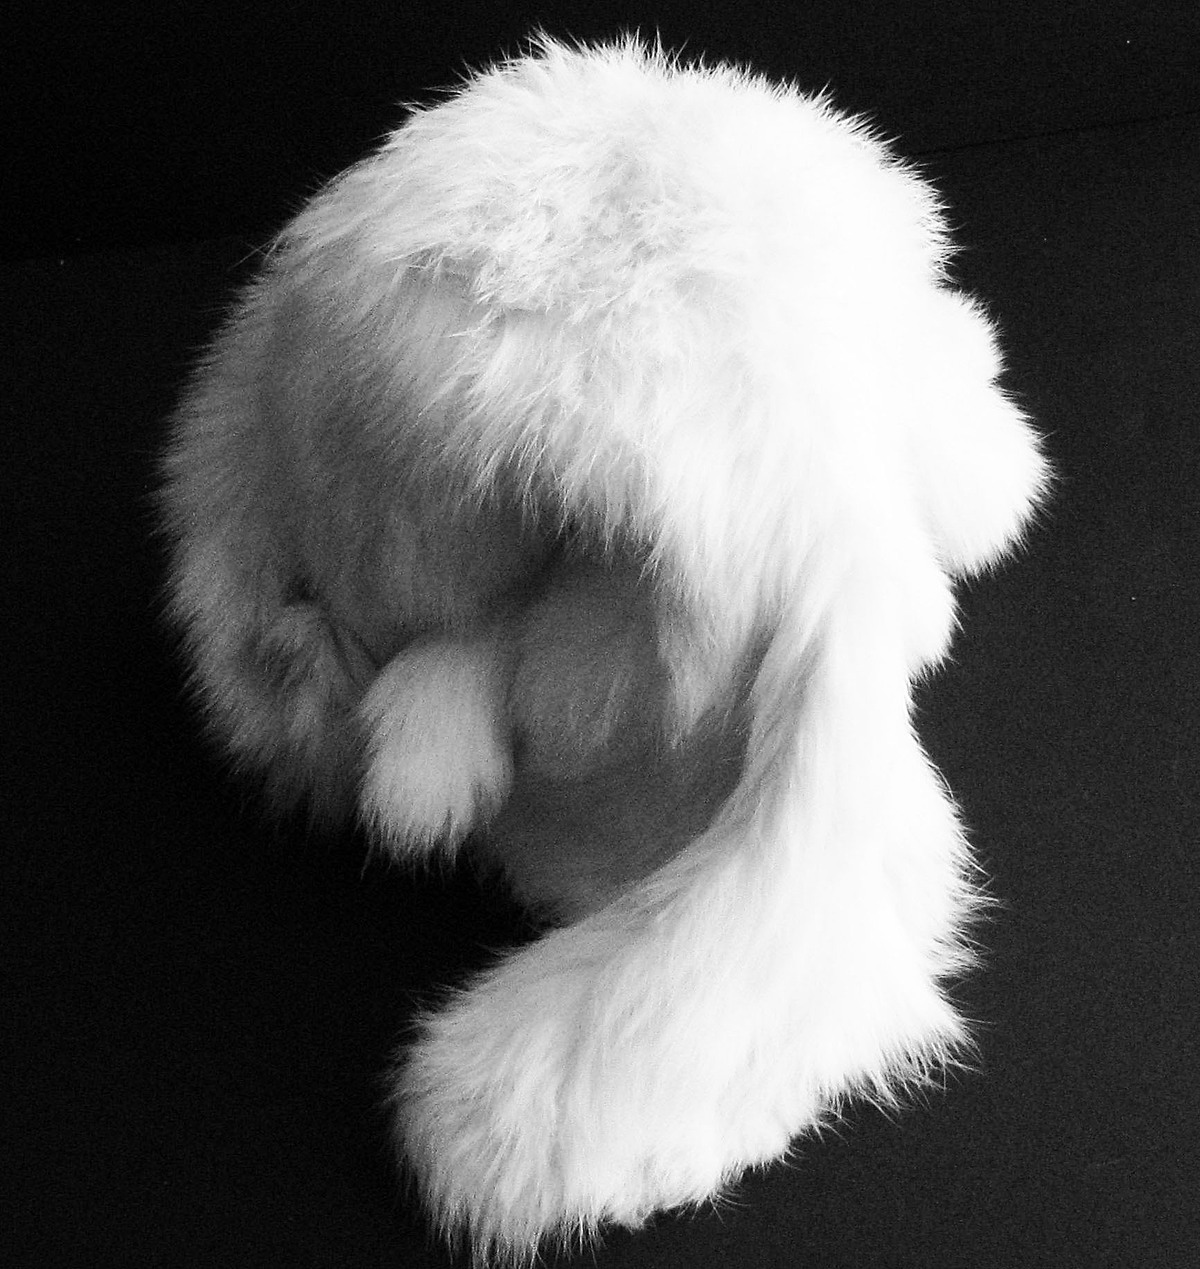 Final Model with Fur